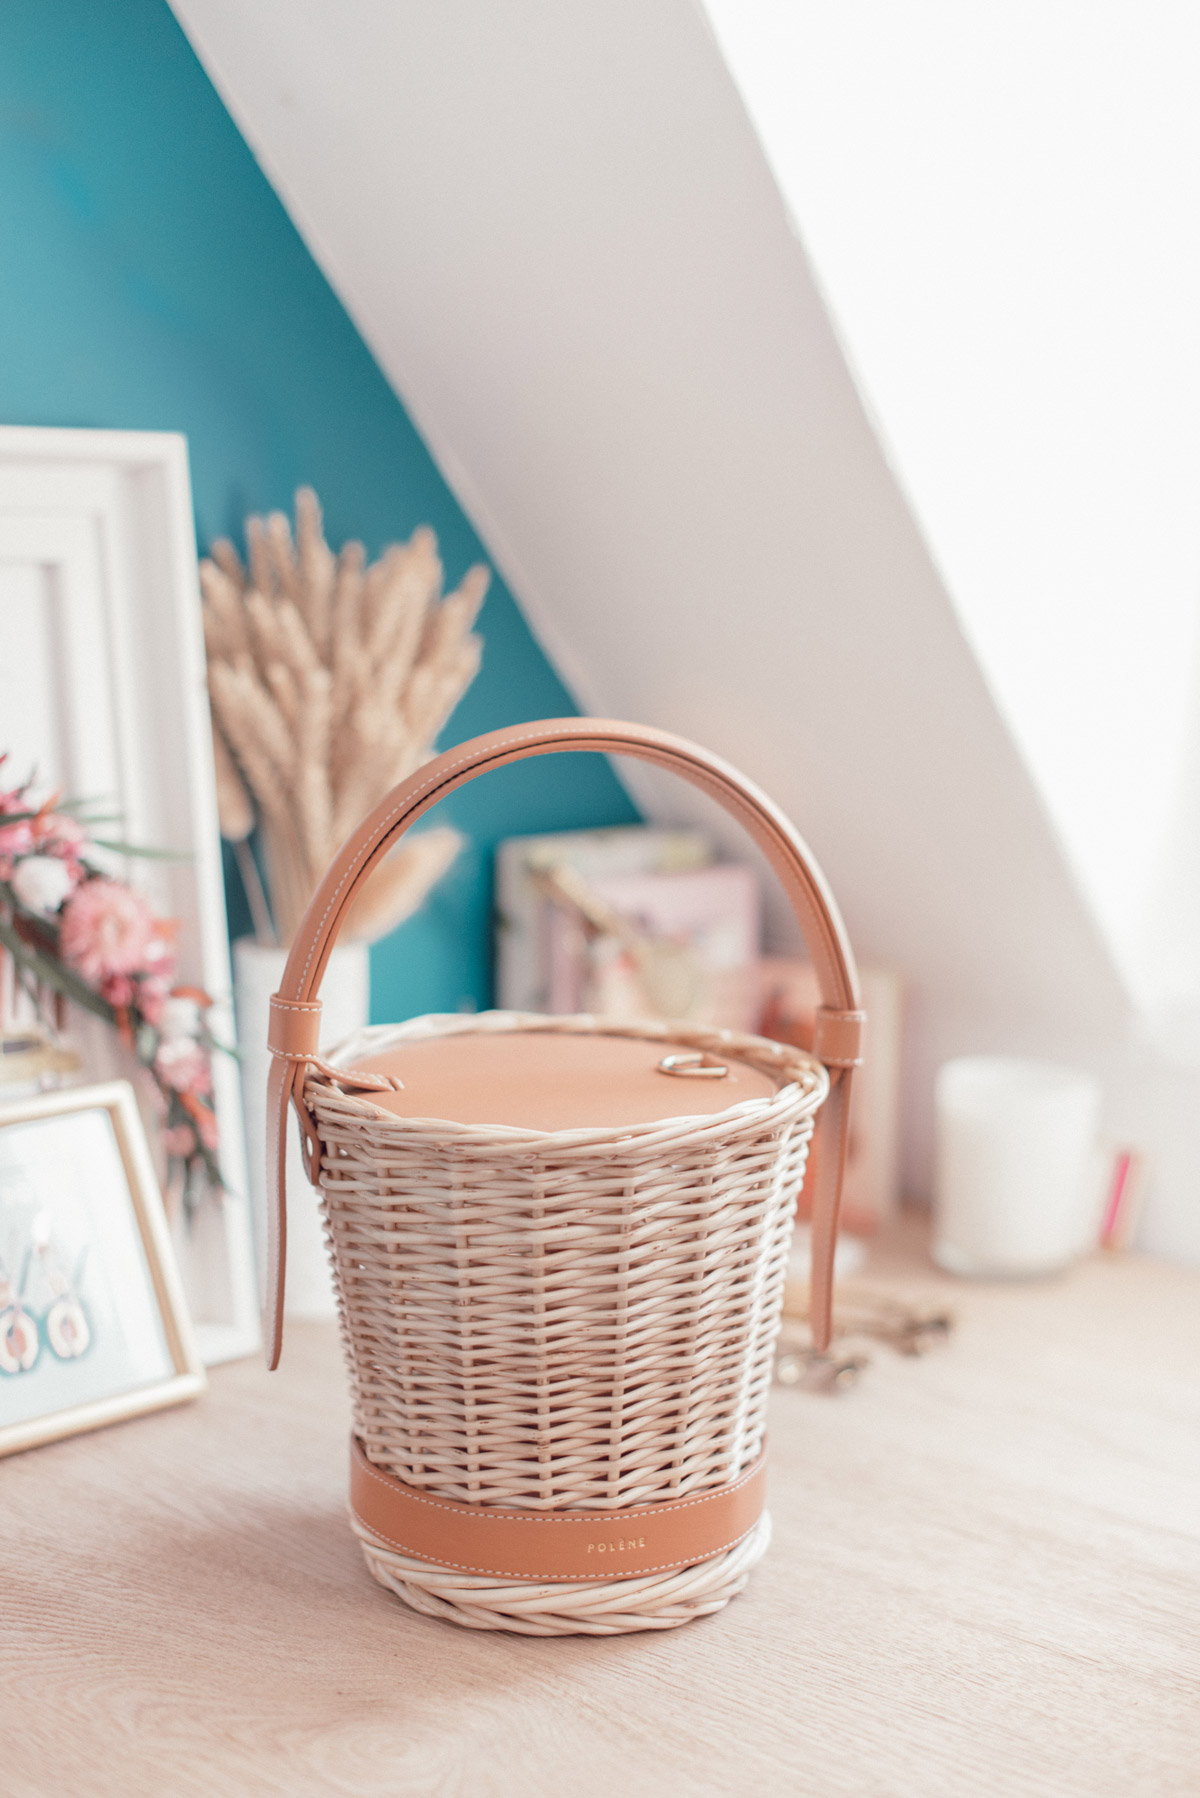 panier-osier-polene-cuir-basket-wicker-leather